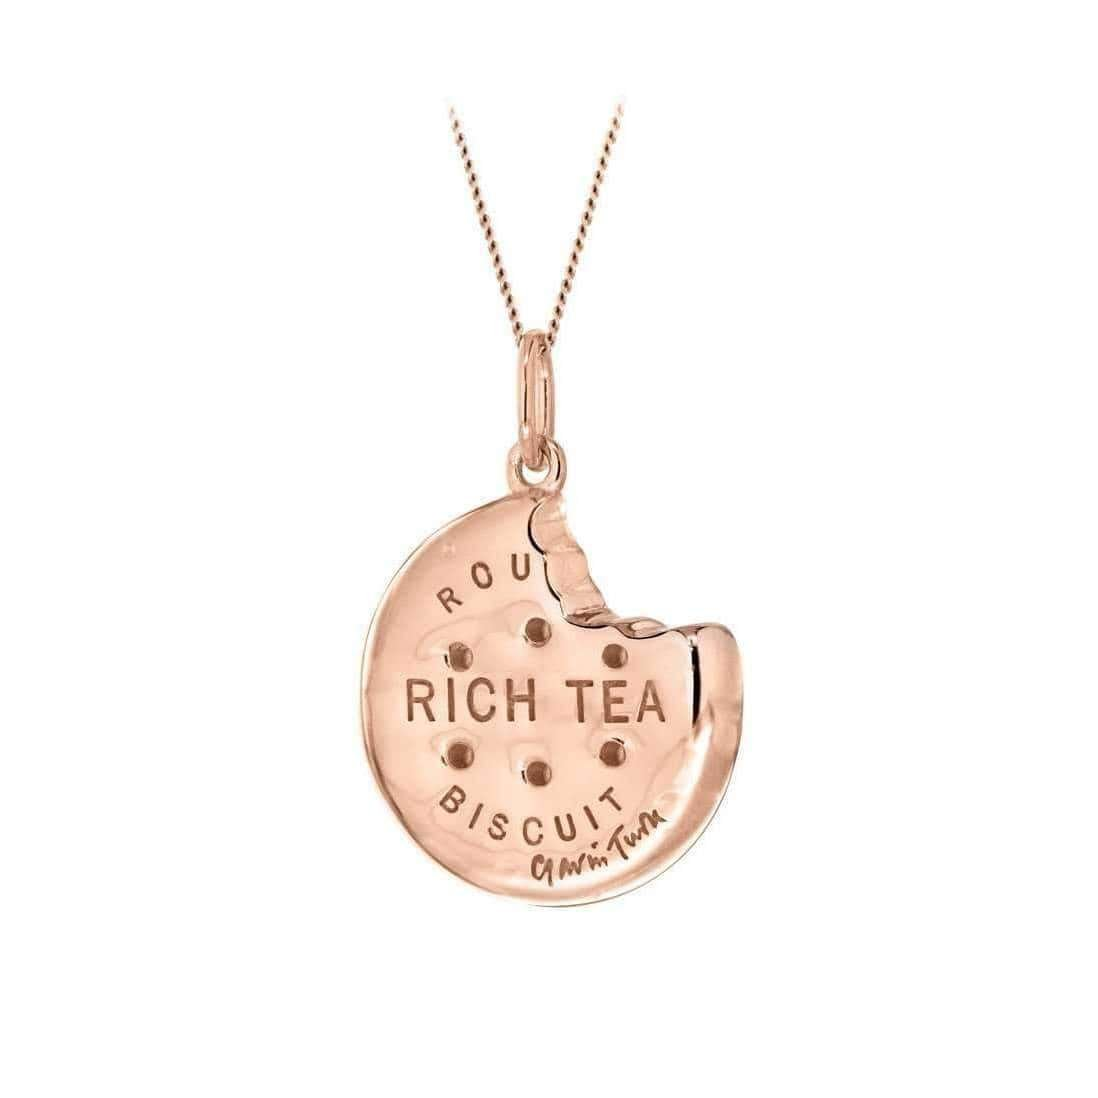 Rose Gold Rich Tea Biscuit Pendant - True Rocks